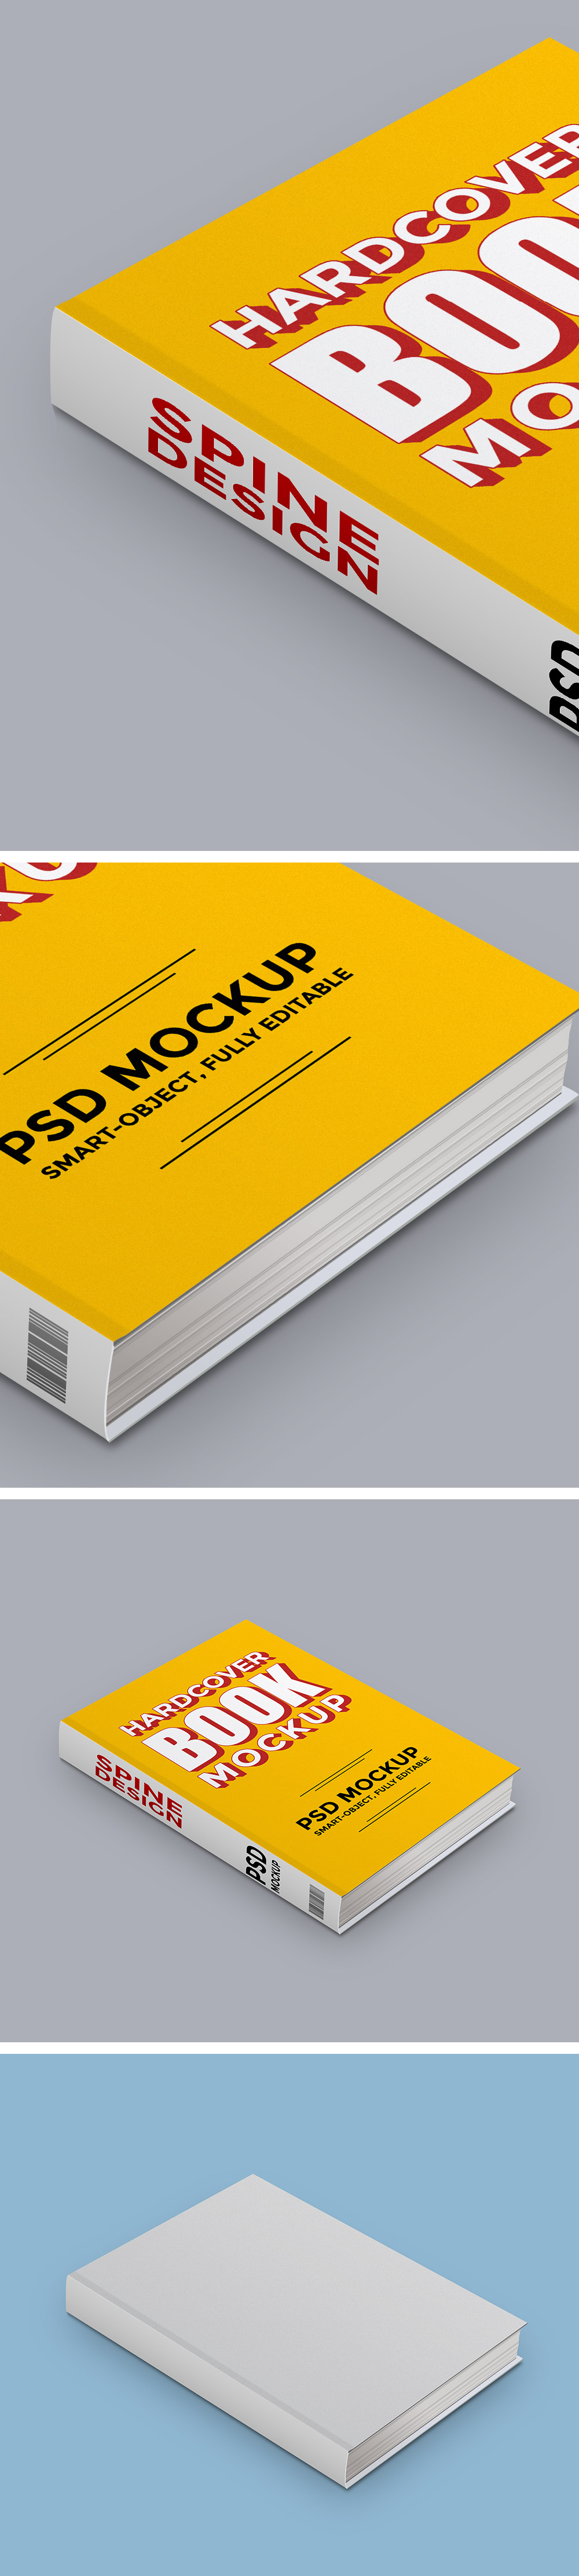 Hardcover Book PSD Mockup